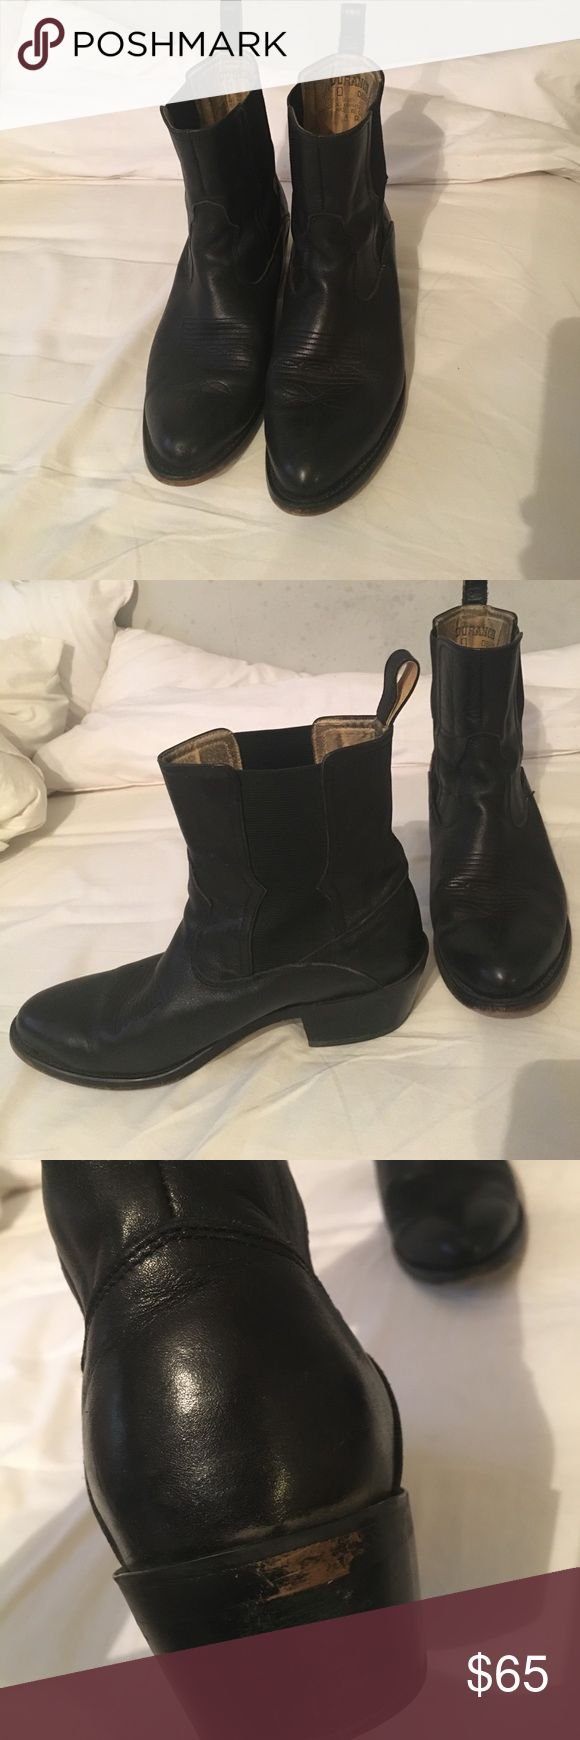 Durango short boots Durango size 8 1/2 men's boot. Great used condition extremely comfortable. Durango Shoes Cowboy & Western Boots